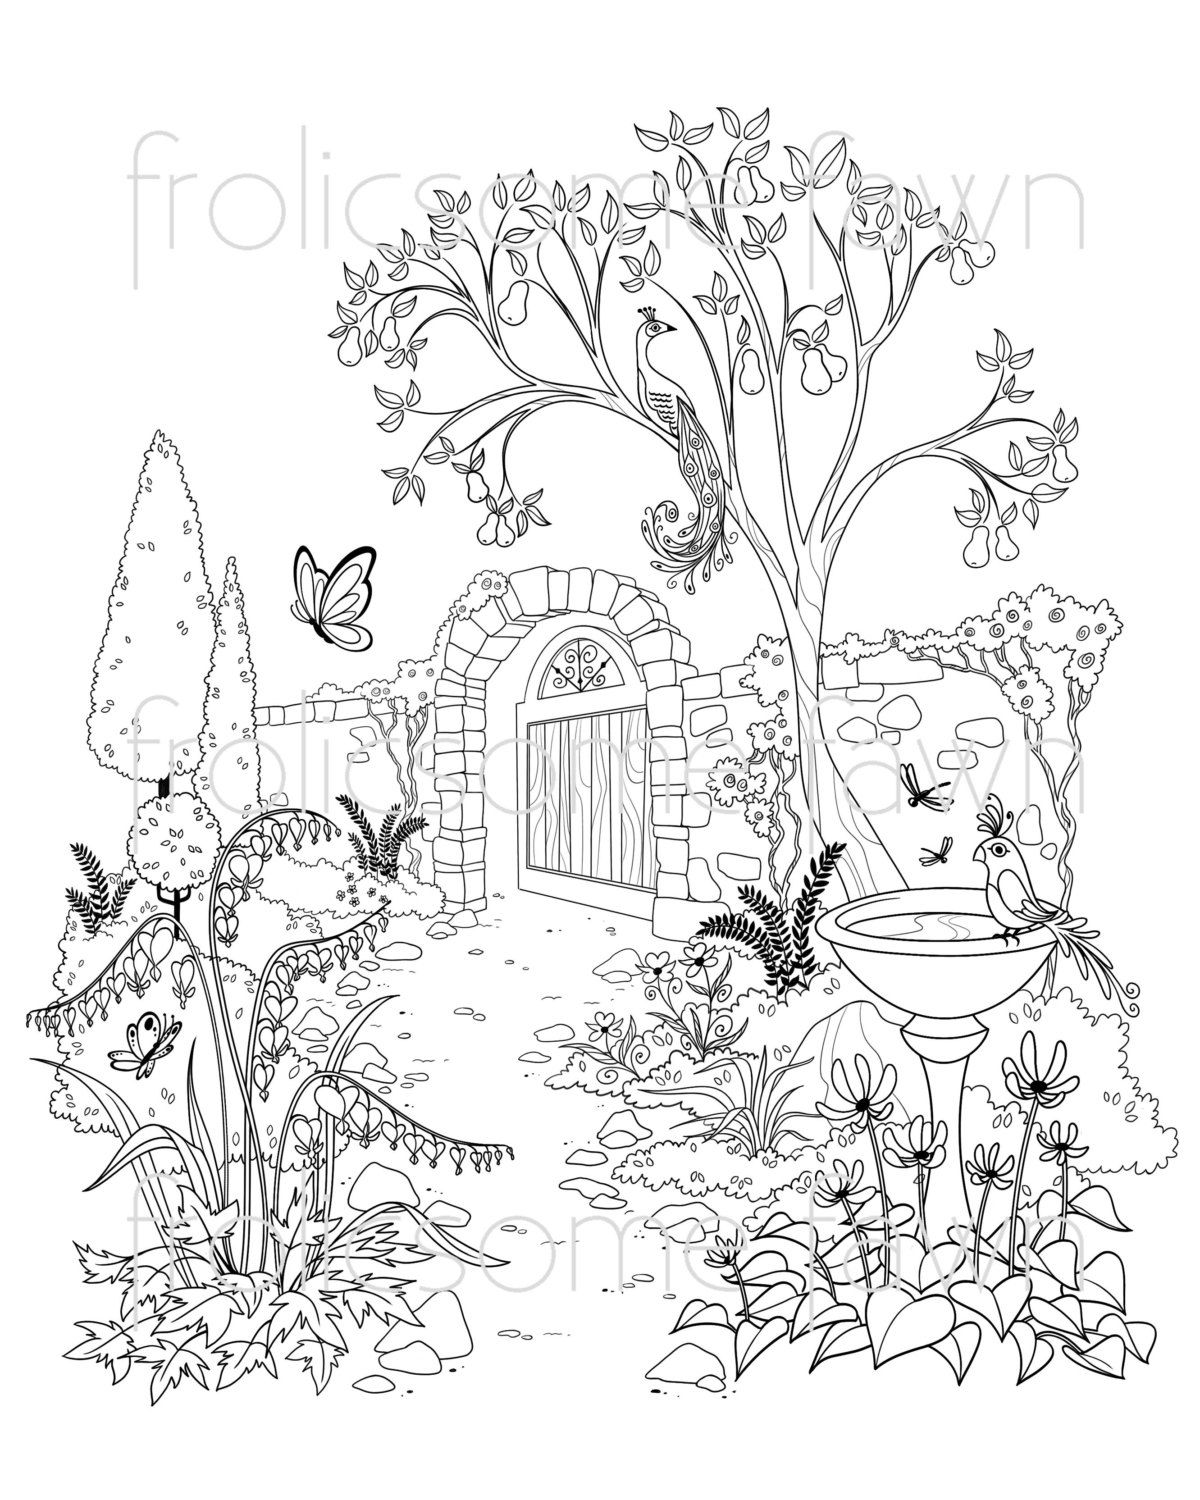 garden coloring page for adults and children fantasy garden fairytale garden - Garden Coloring Pages 2